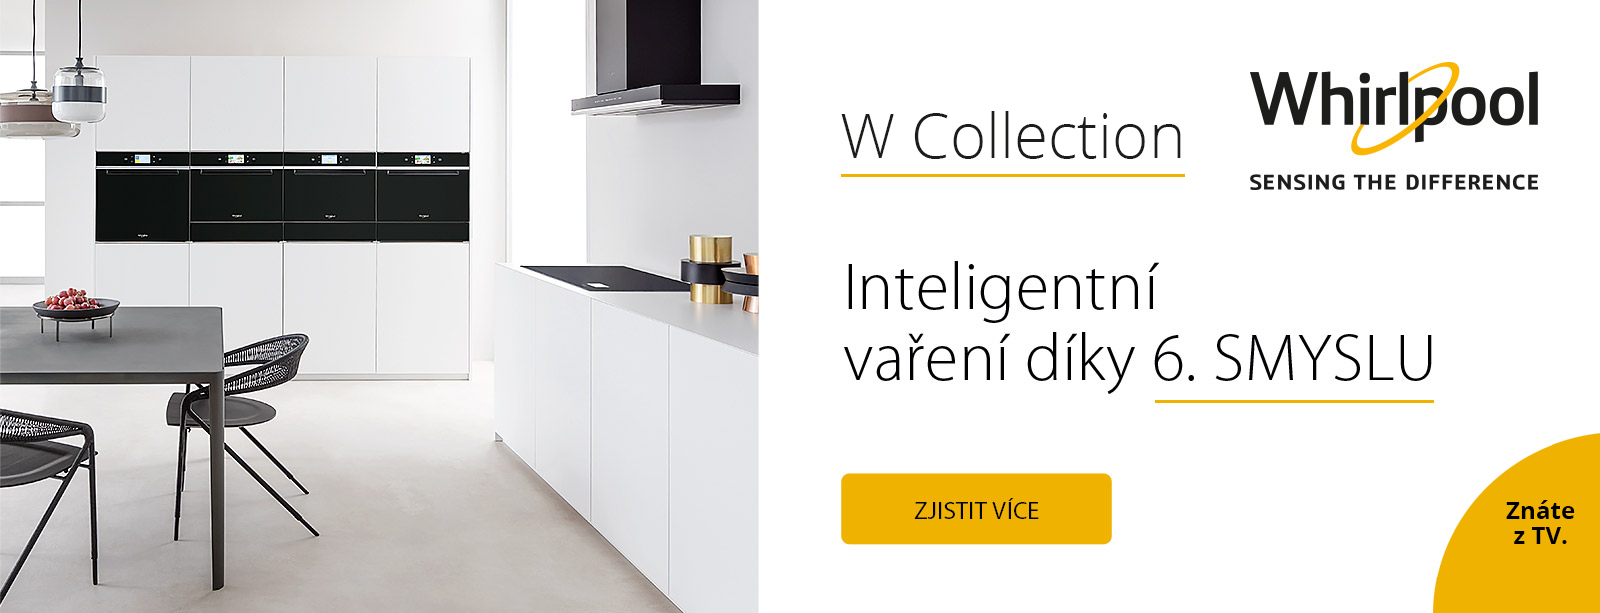 W colection Whirlpool